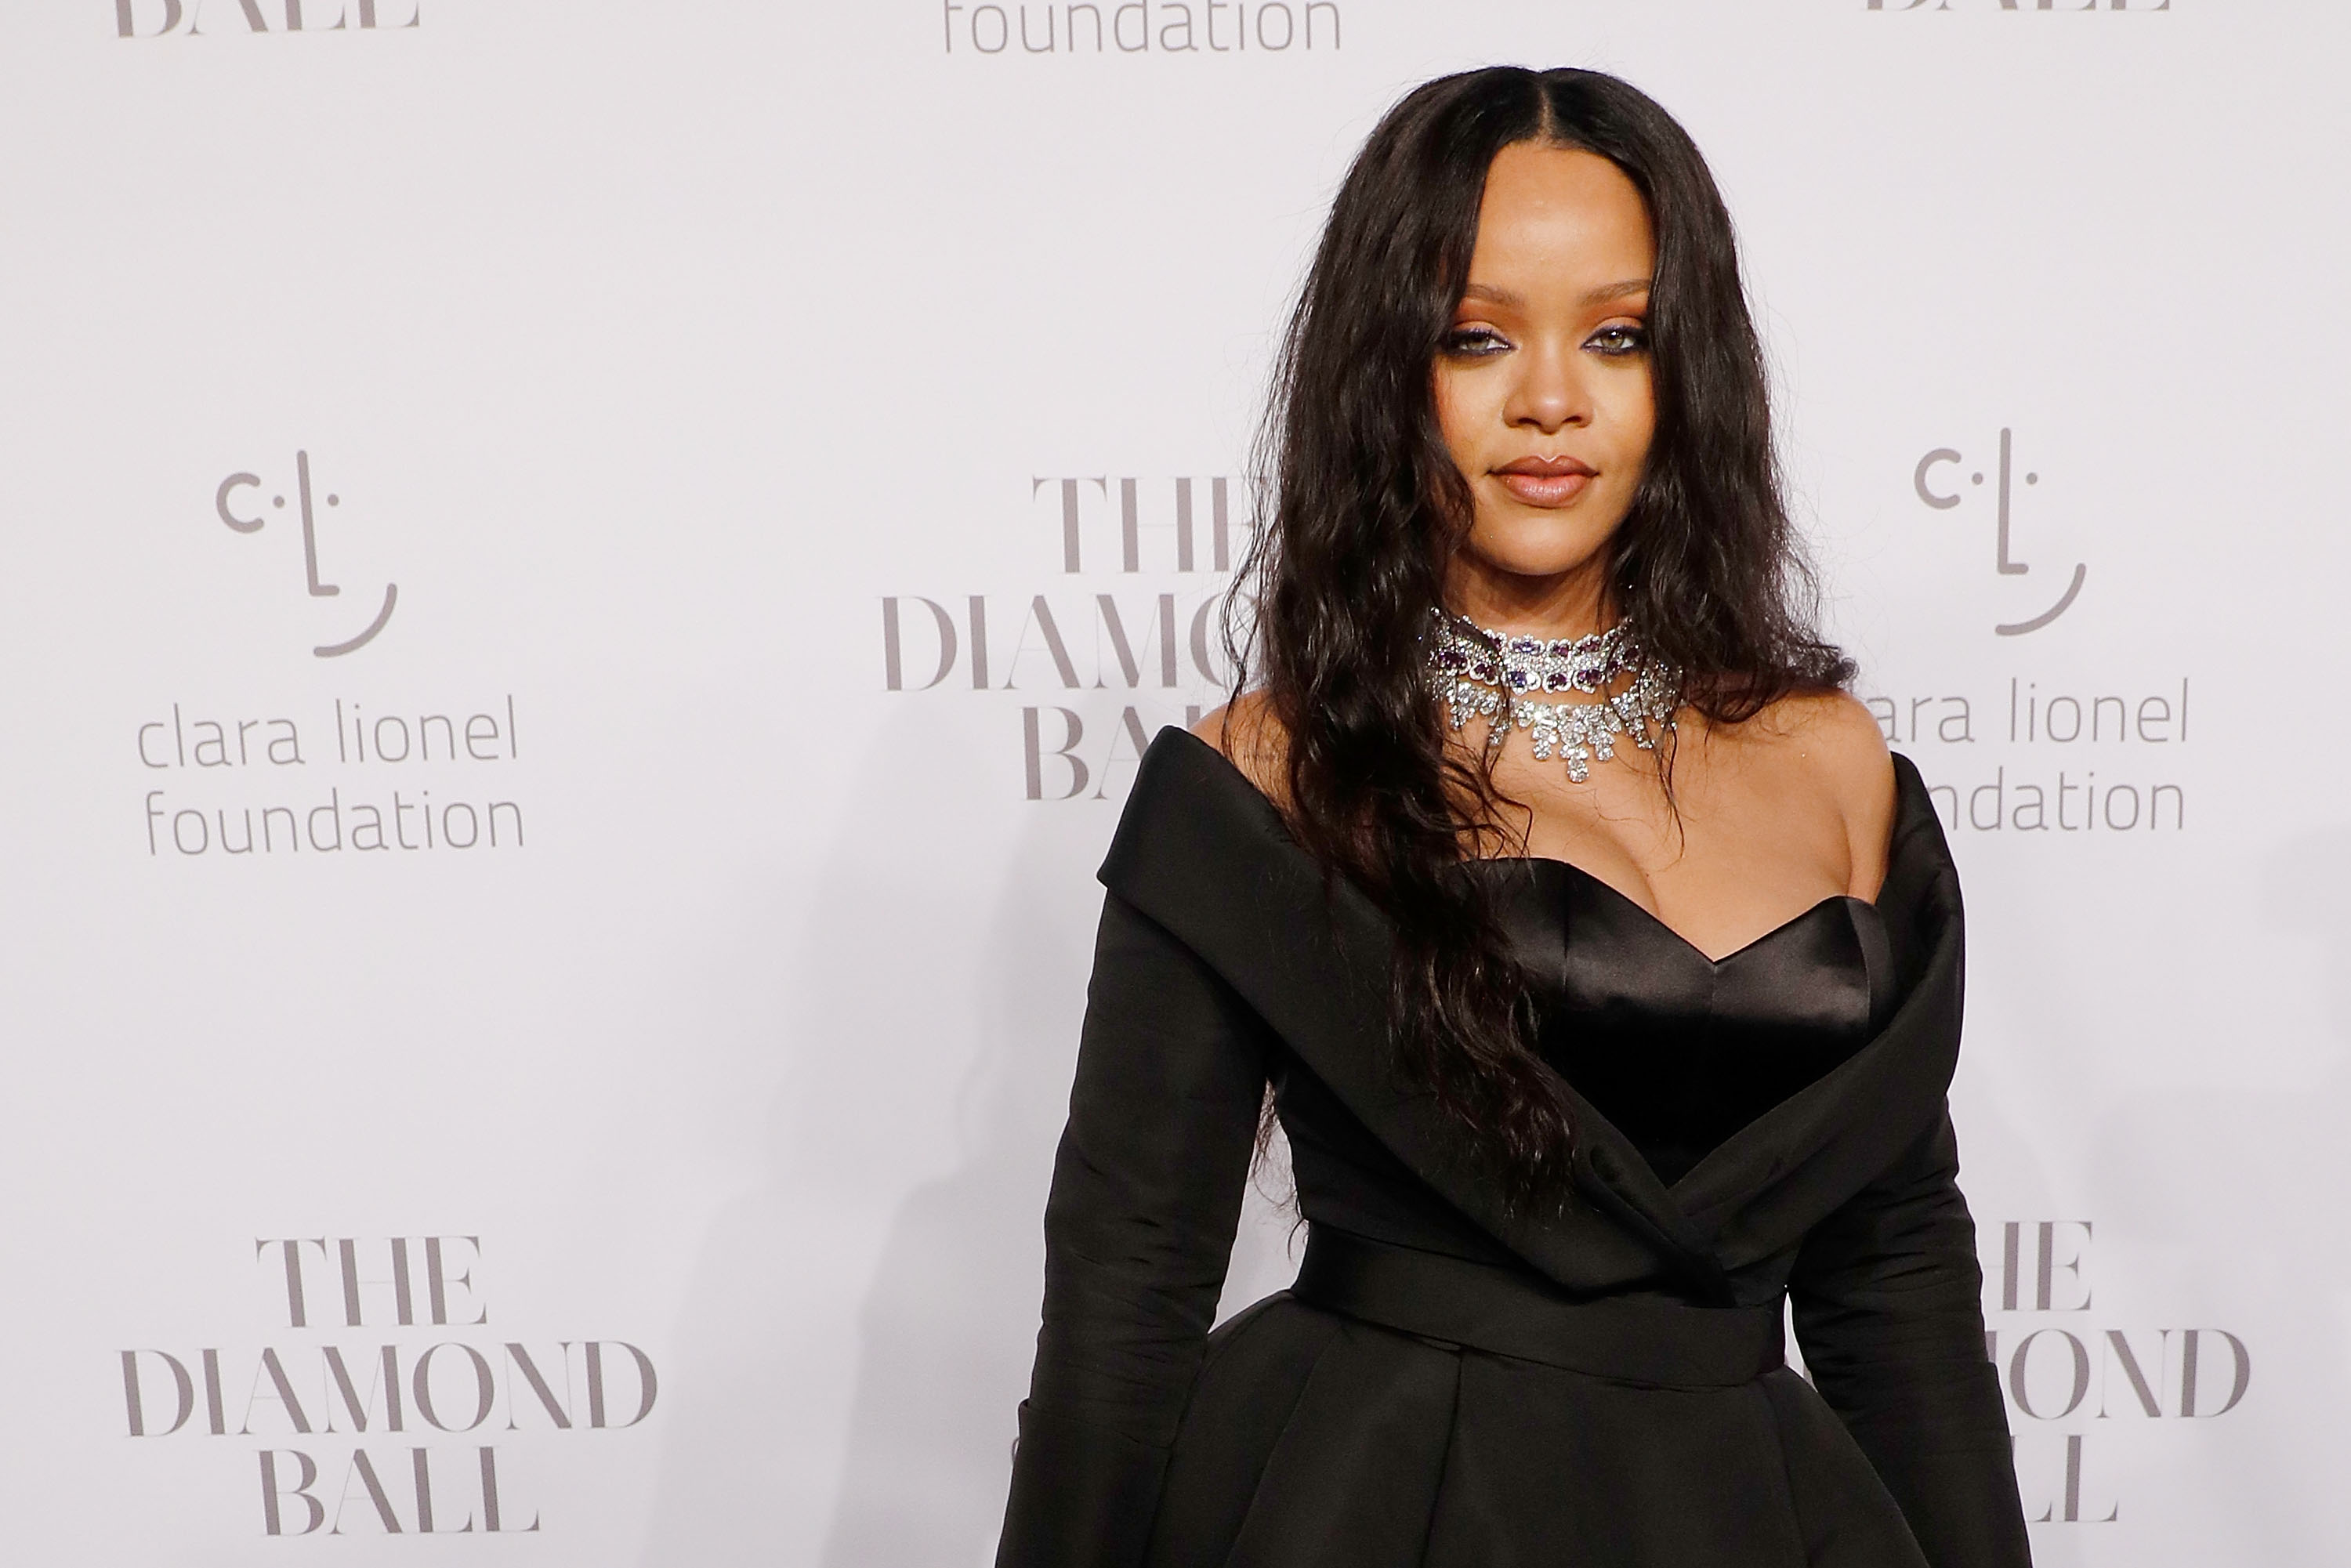 Rihanna attends the 2017 Diamond Ball at Cipriani Wall Street on September 14, 2017 in New York City.